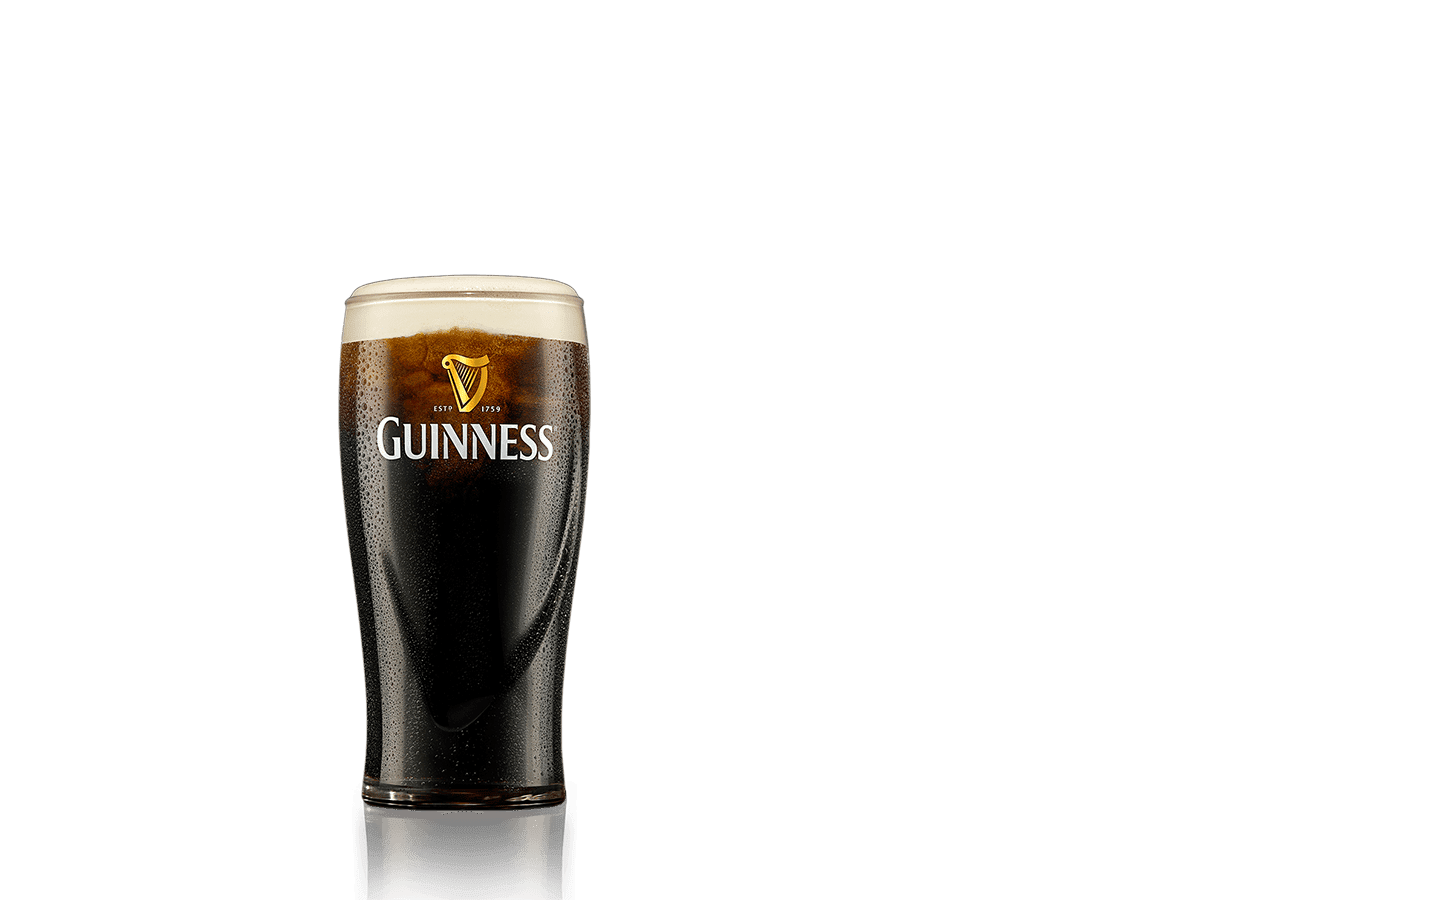 Jindetr s sal una guinness significativamente deliciosa - Guinness beer images ...